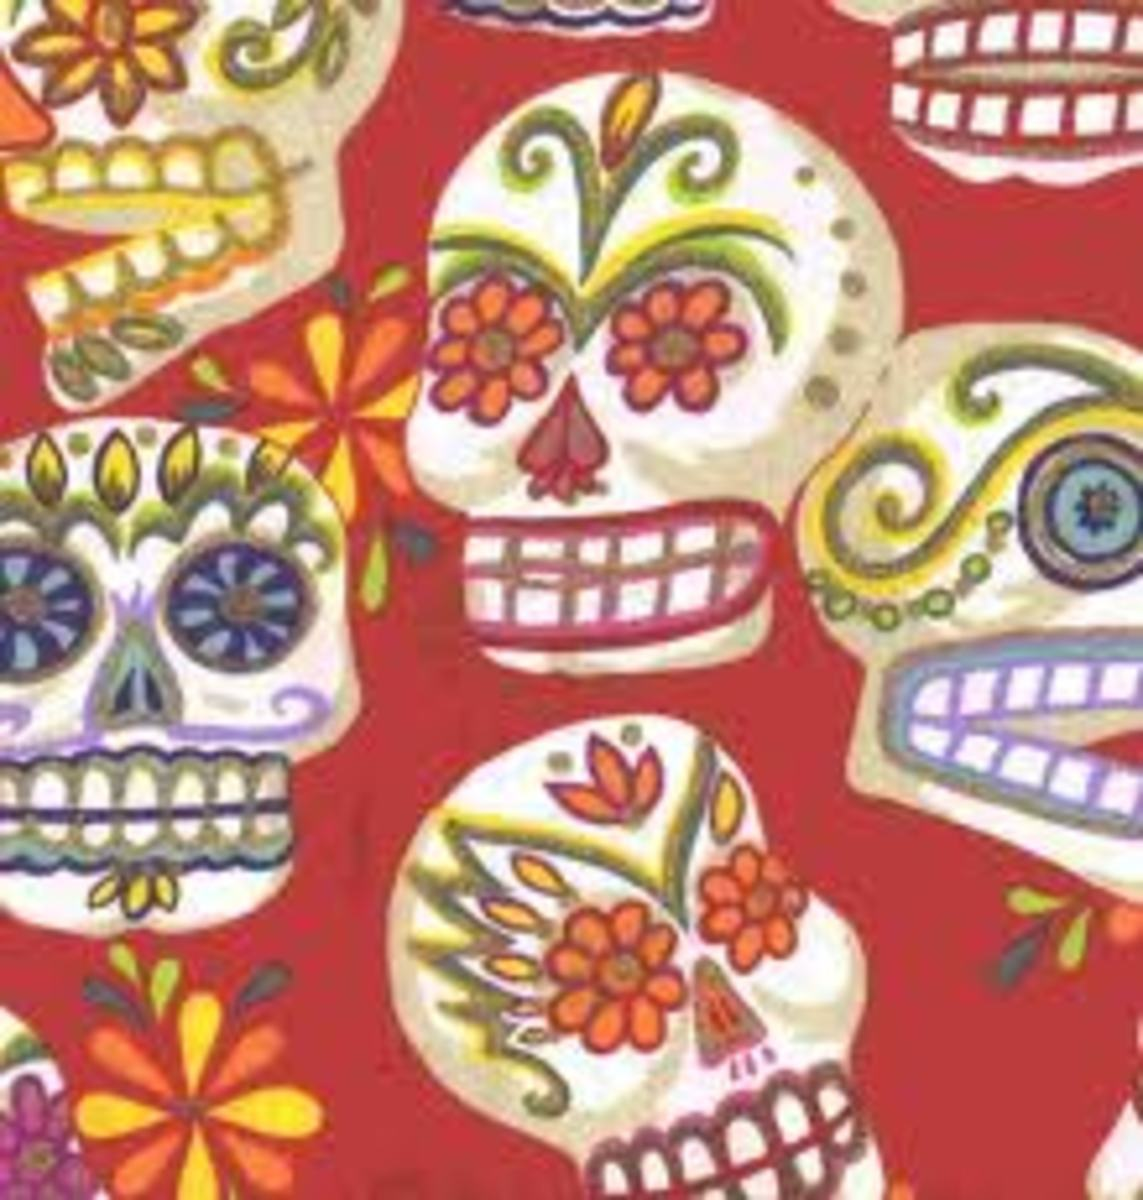 Meaning of Dia de los Muertos Face Painting